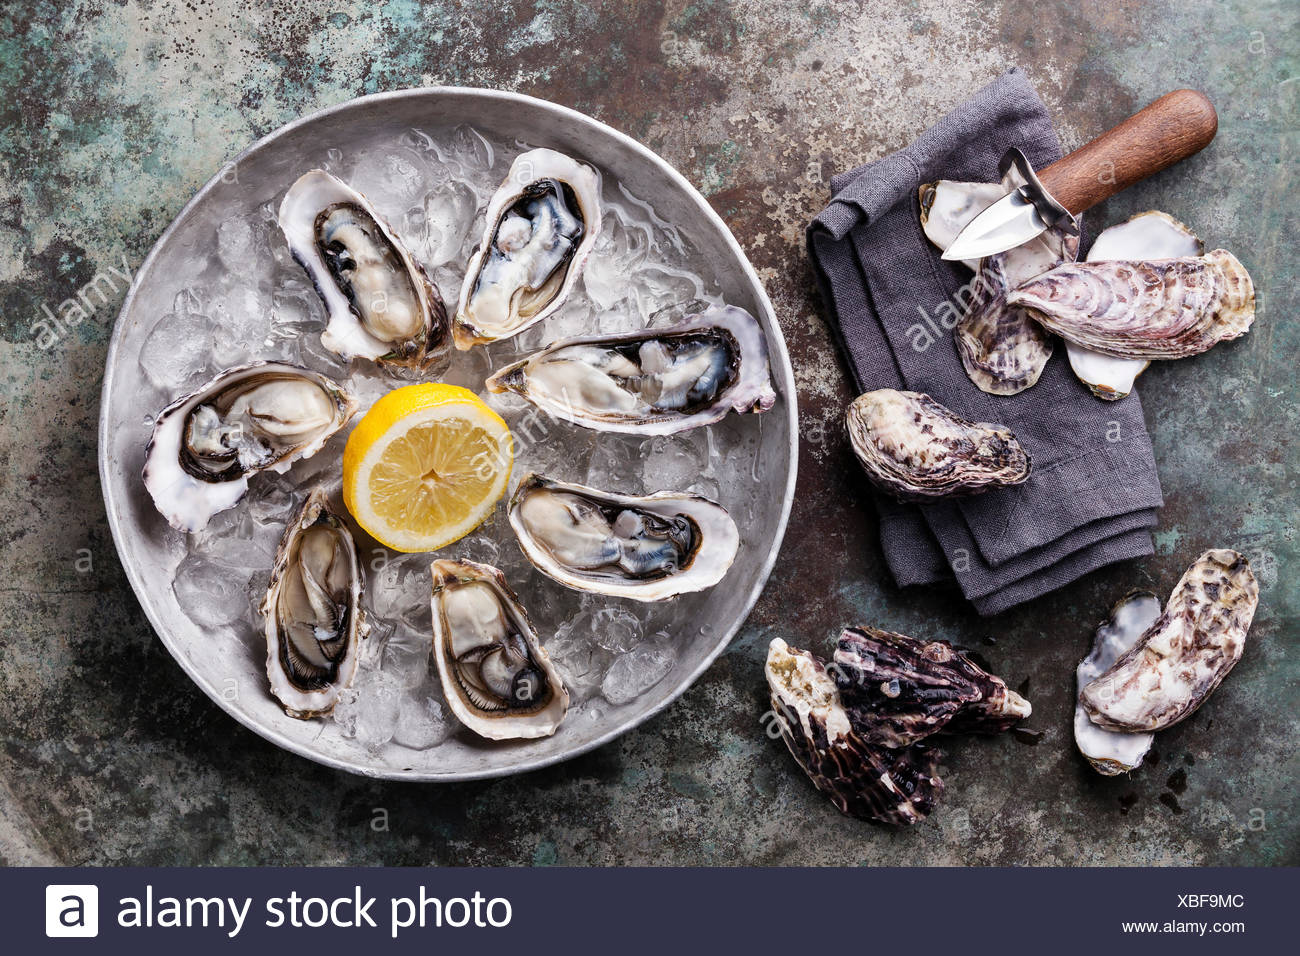 Opened Oysters on metal plate with ice and lemon on metal background - Stock Image